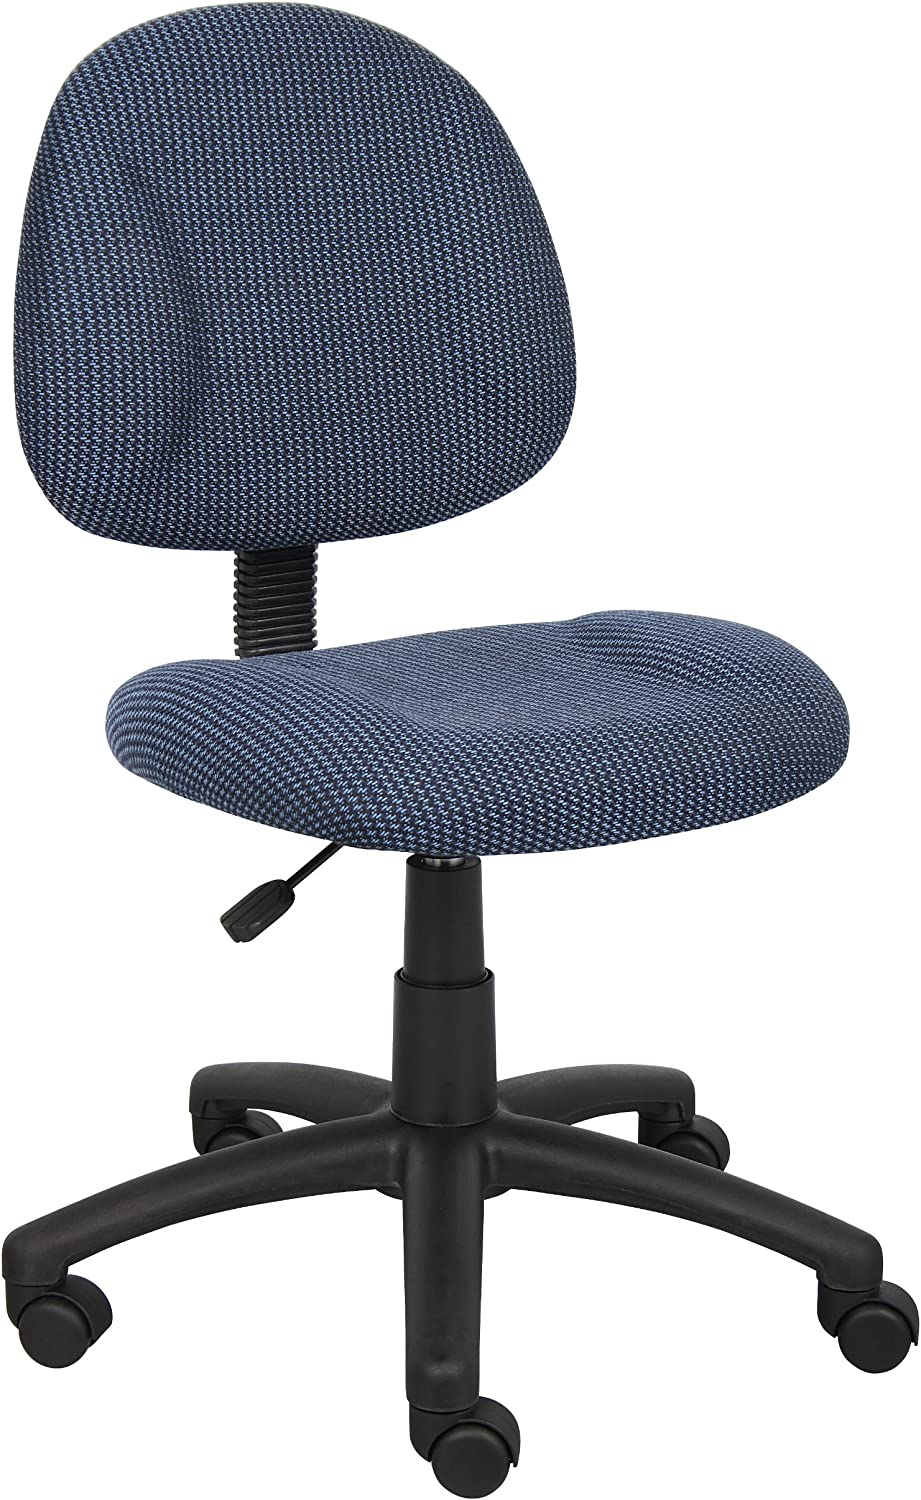 Boss Office Products Perfect Posture Chair – An affordable chair that comes with excellent cushioning and a waterfall seat